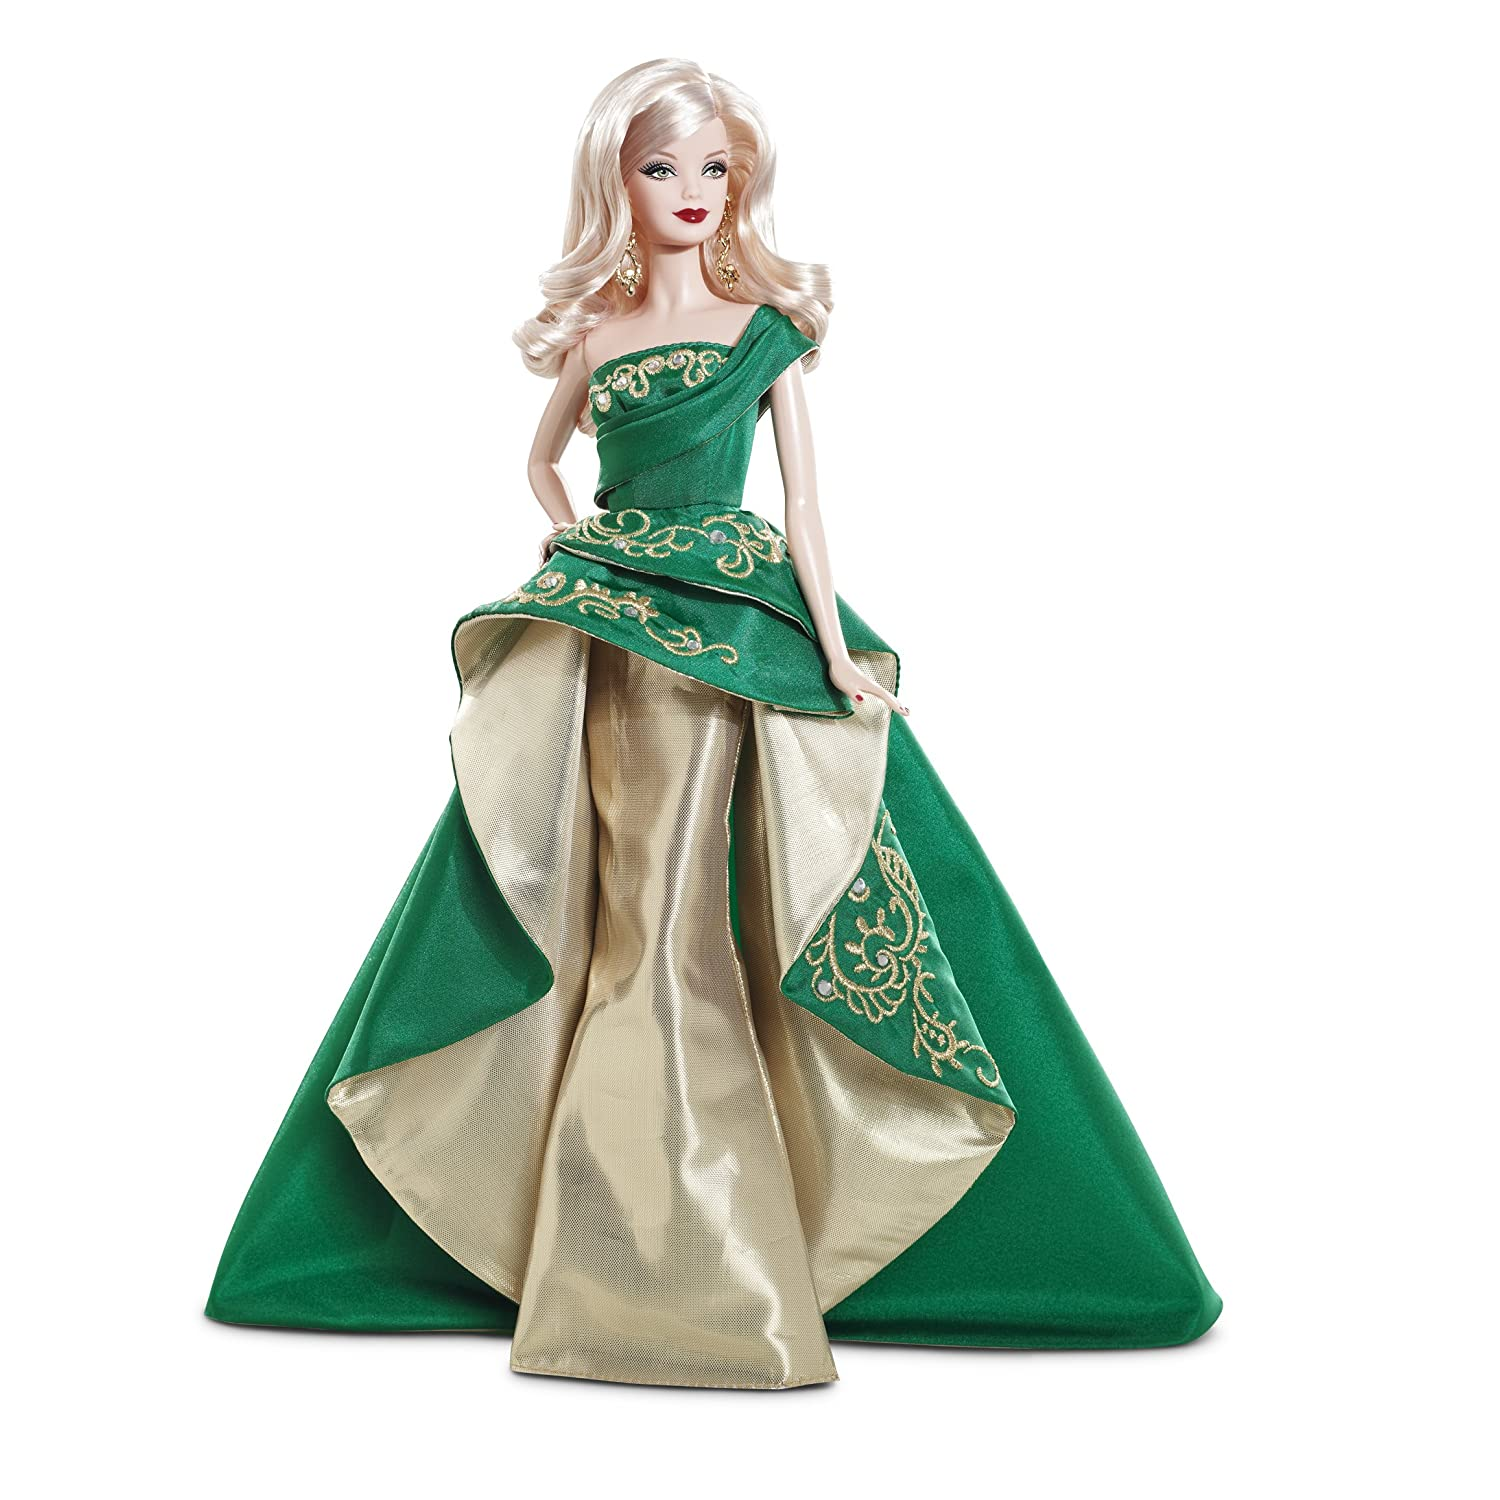 Barbie Collector 2012 Holiday Doll: Barbie Doll History